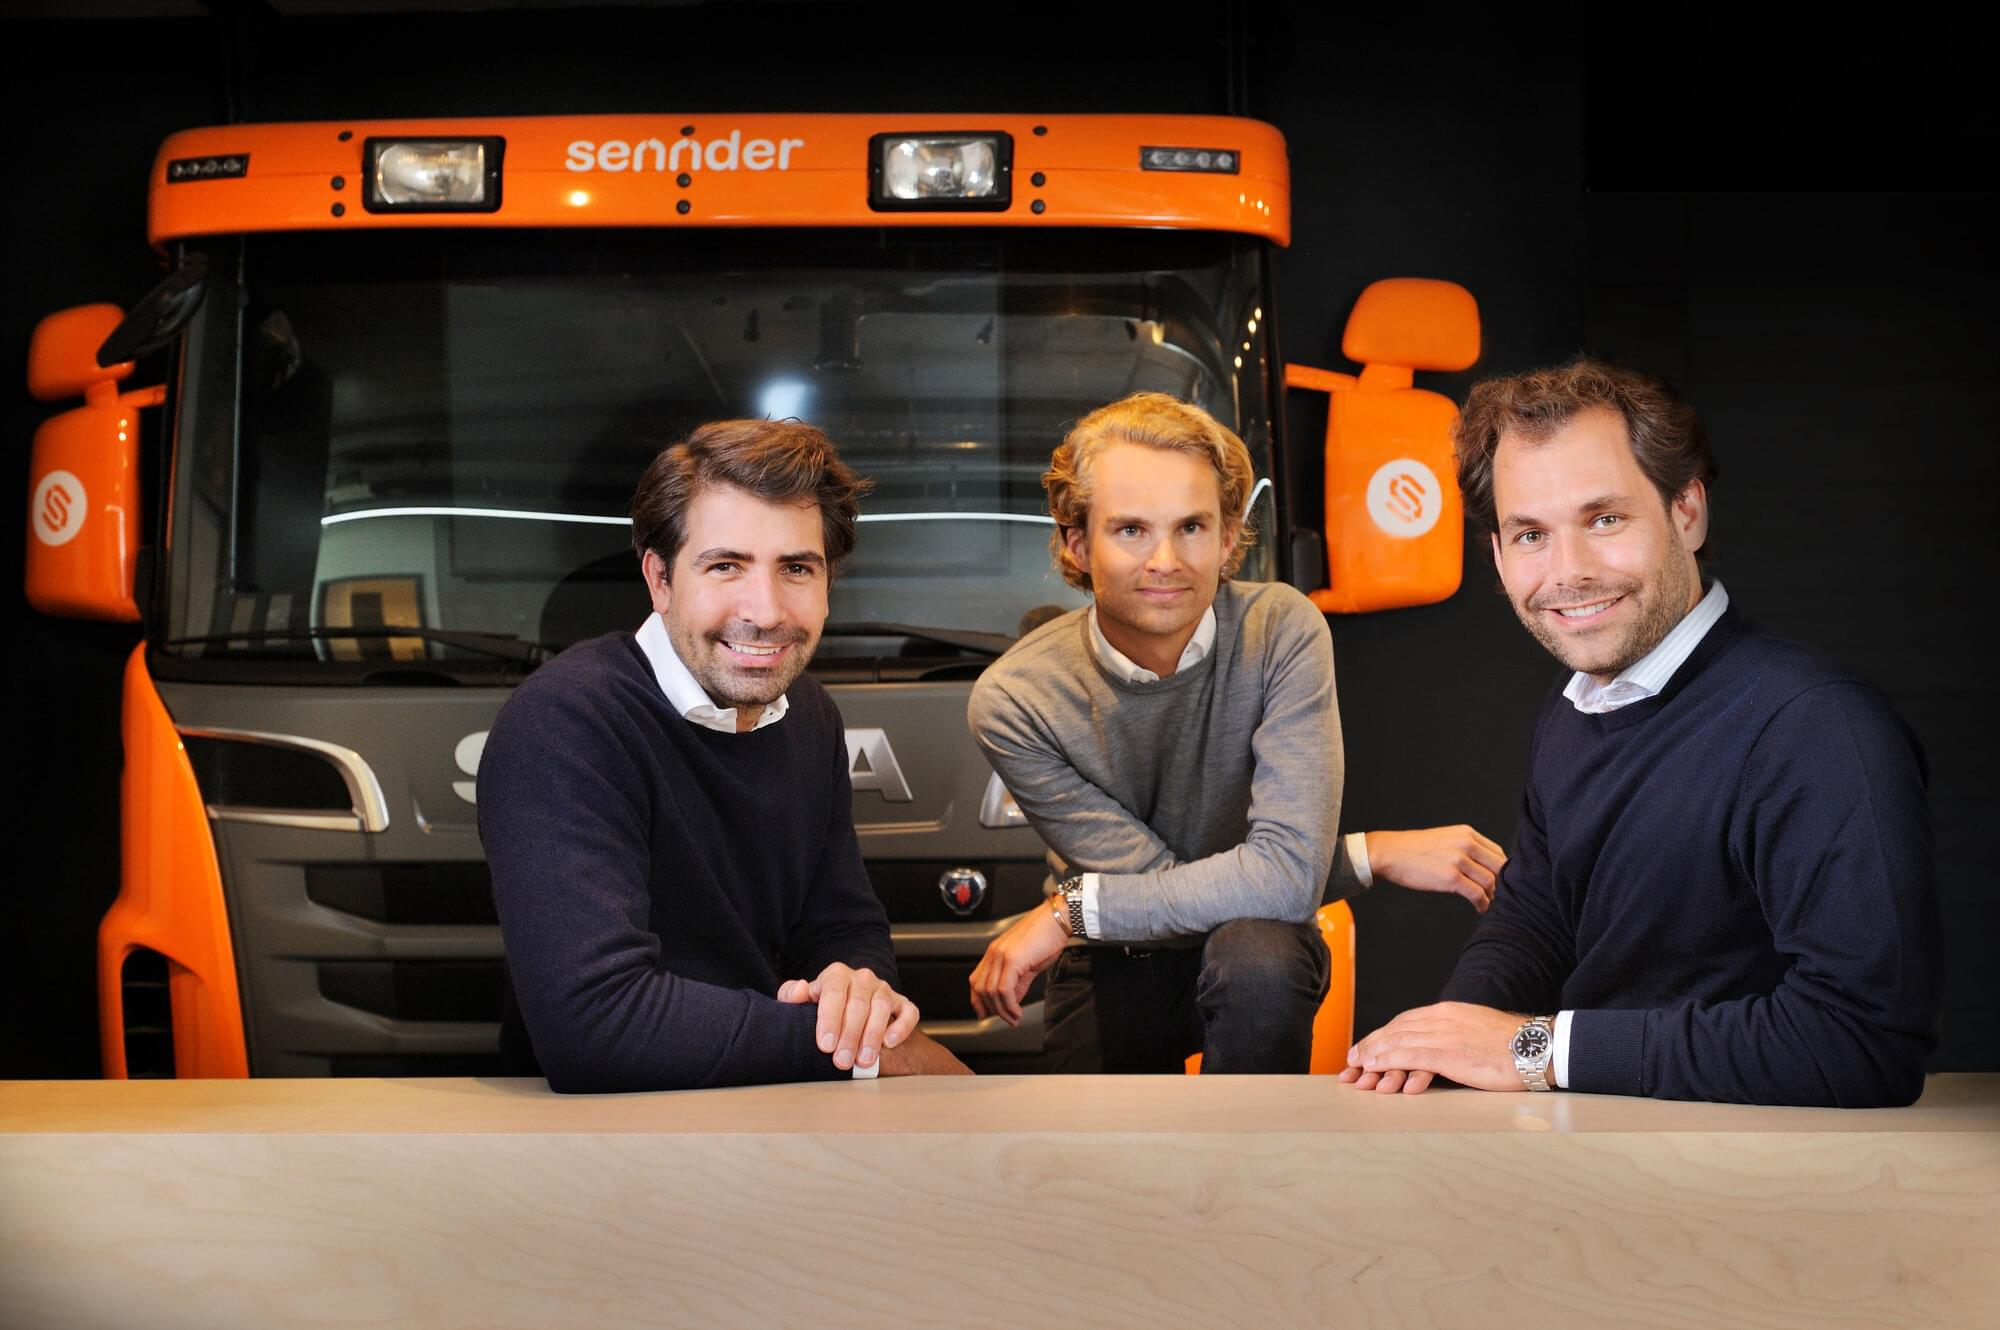 sennder acquires Uber's European freight business